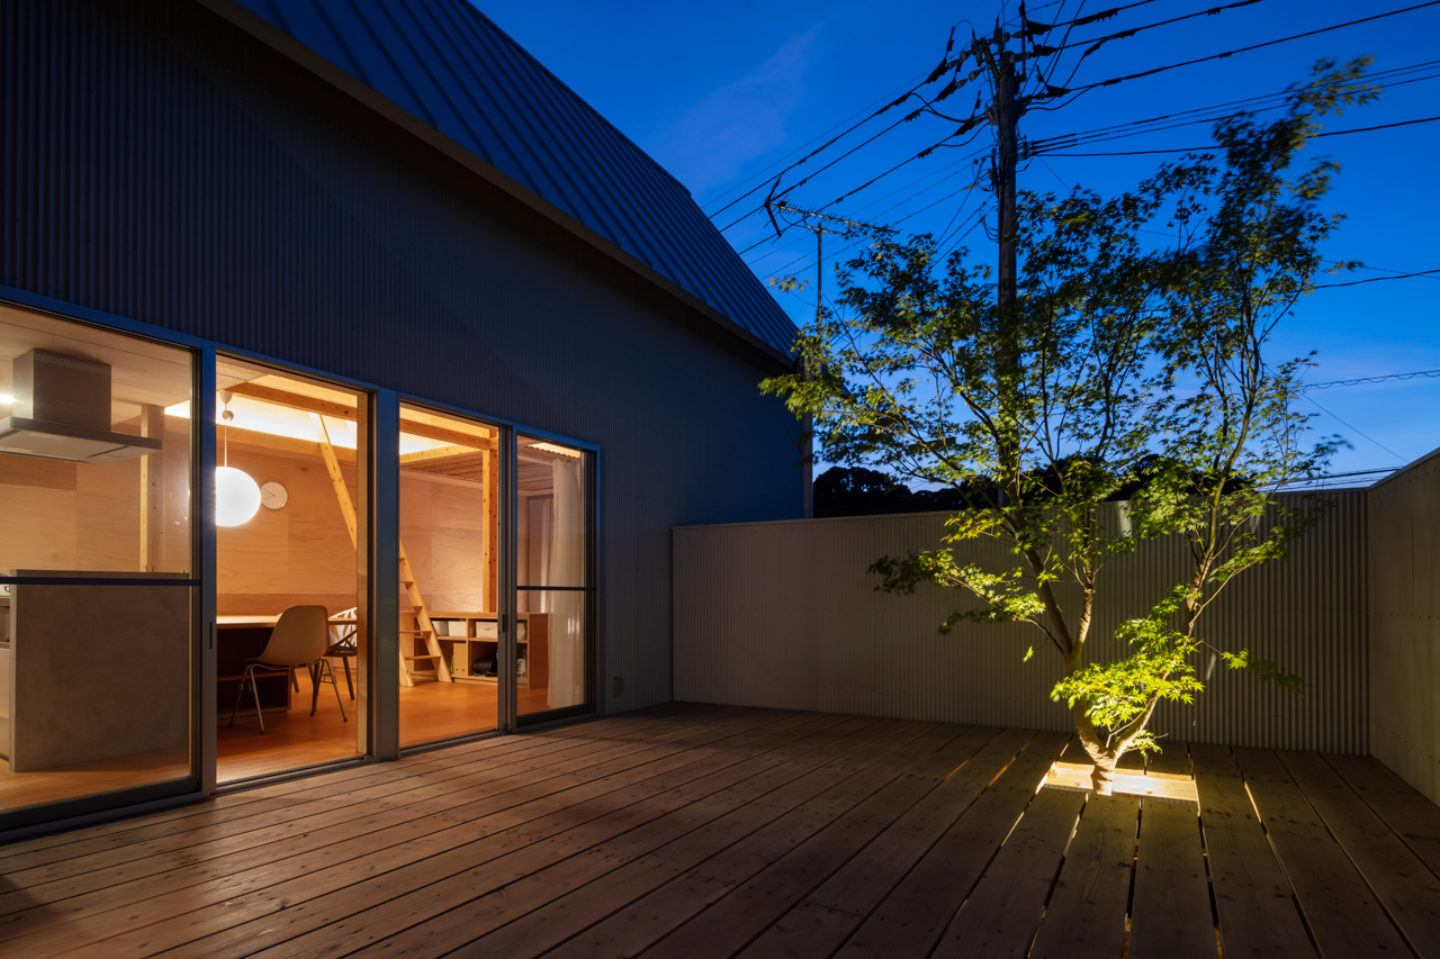 IGNANT-Architecture-YN-Architects-Masumitsu-House-9